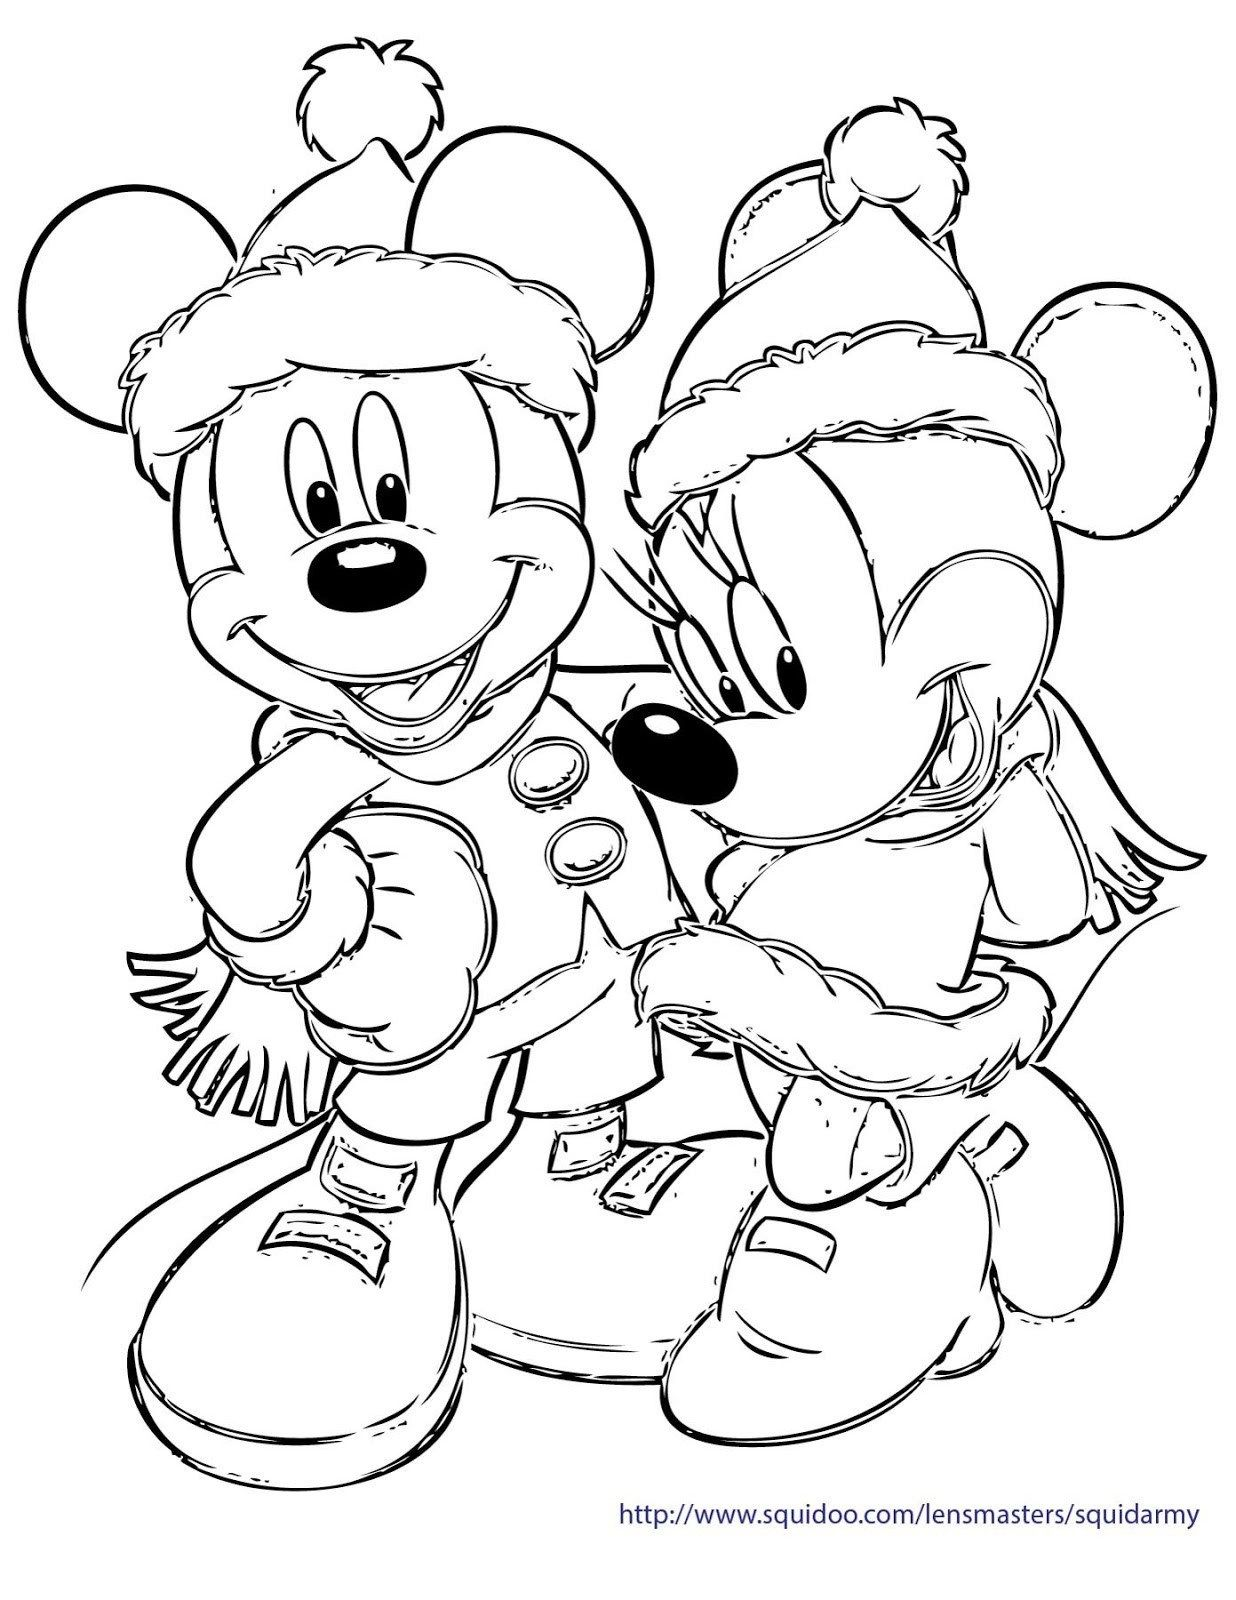 Mickey And Minnie Coloring Pages Mickey Minnie Christmas Coloring Page With Mouse Pages Coloring Pages - davemelillo.com